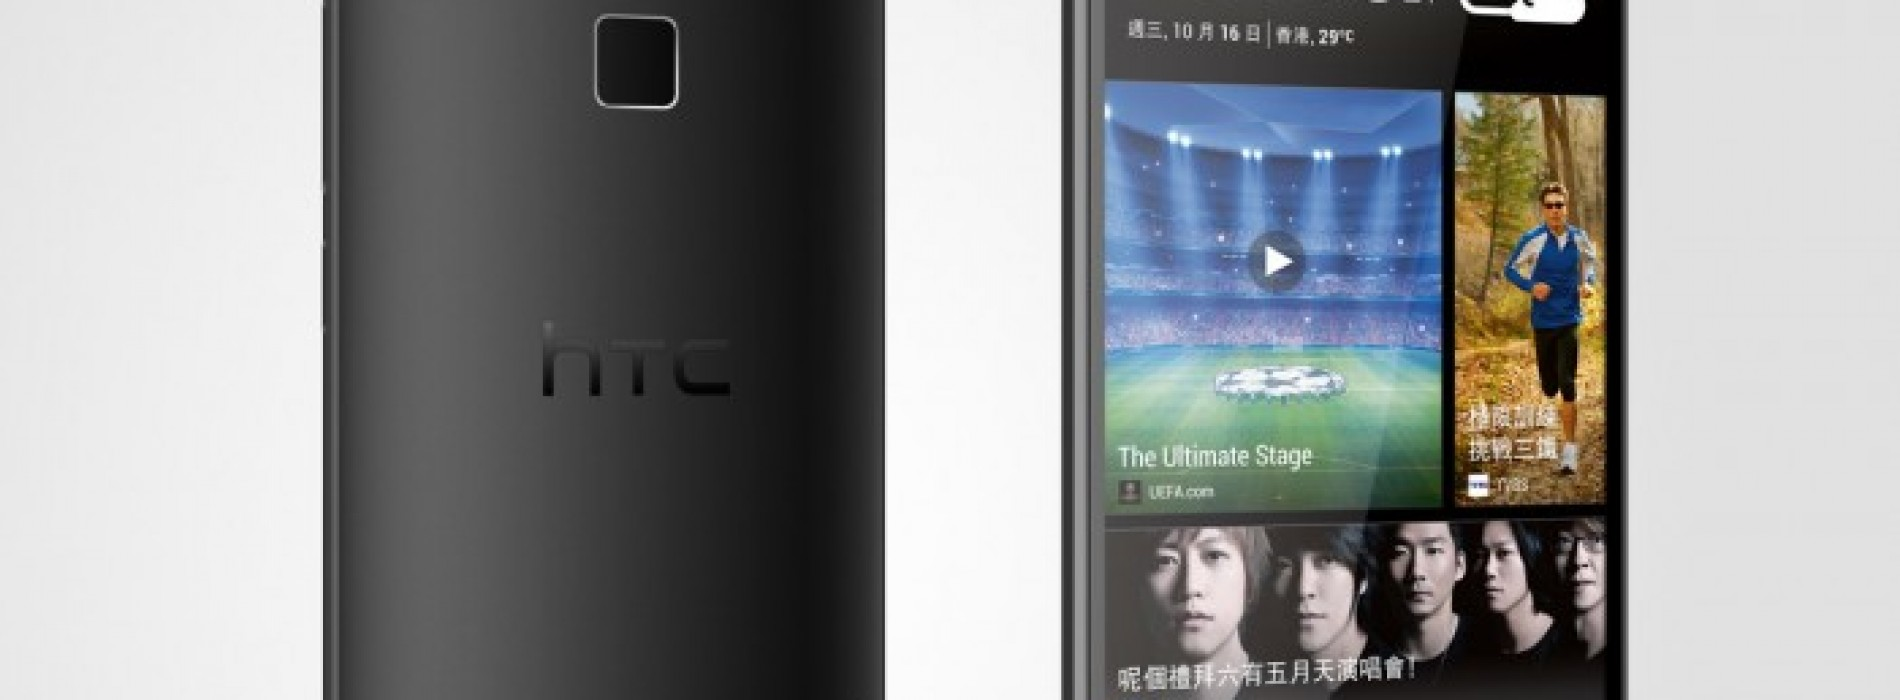 Black HTC One max revealed, only available in Hong Kong